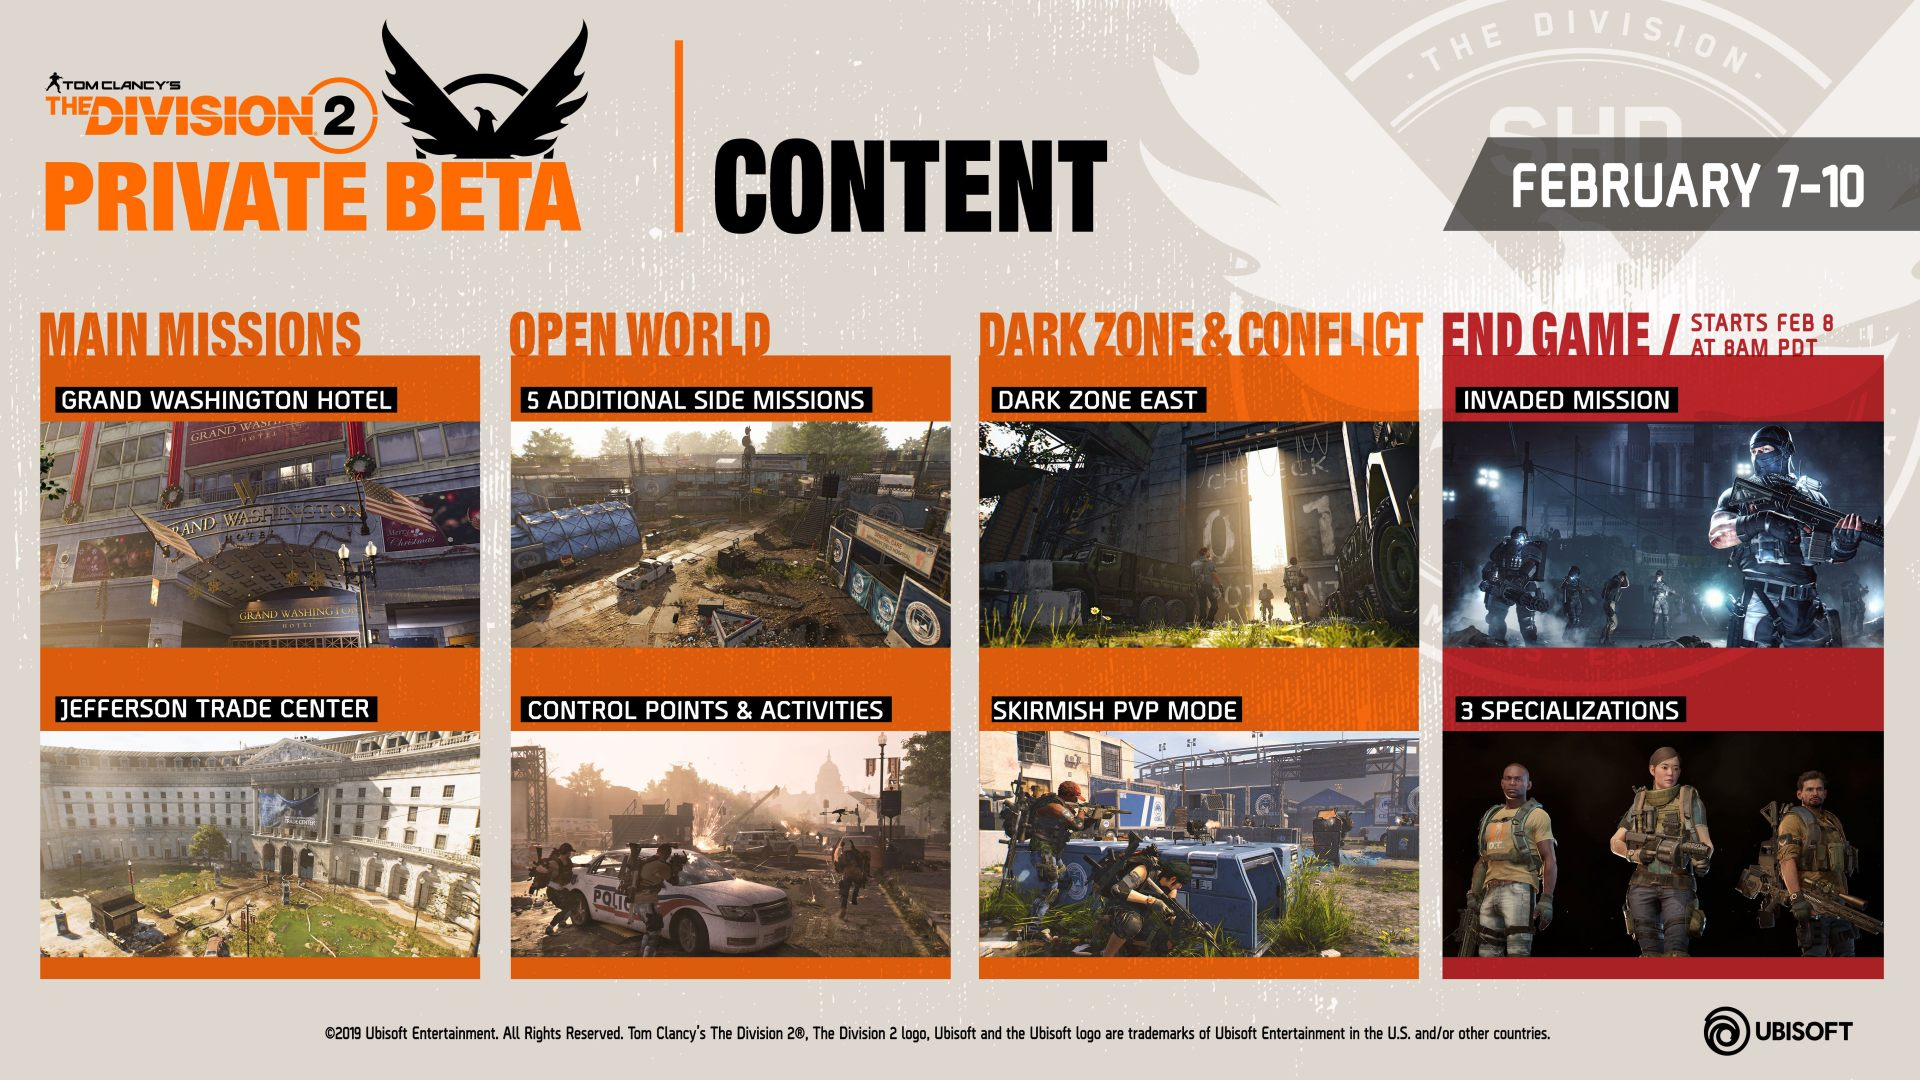 The Division 2's 'Private Beta' features early missions and secret endgame content